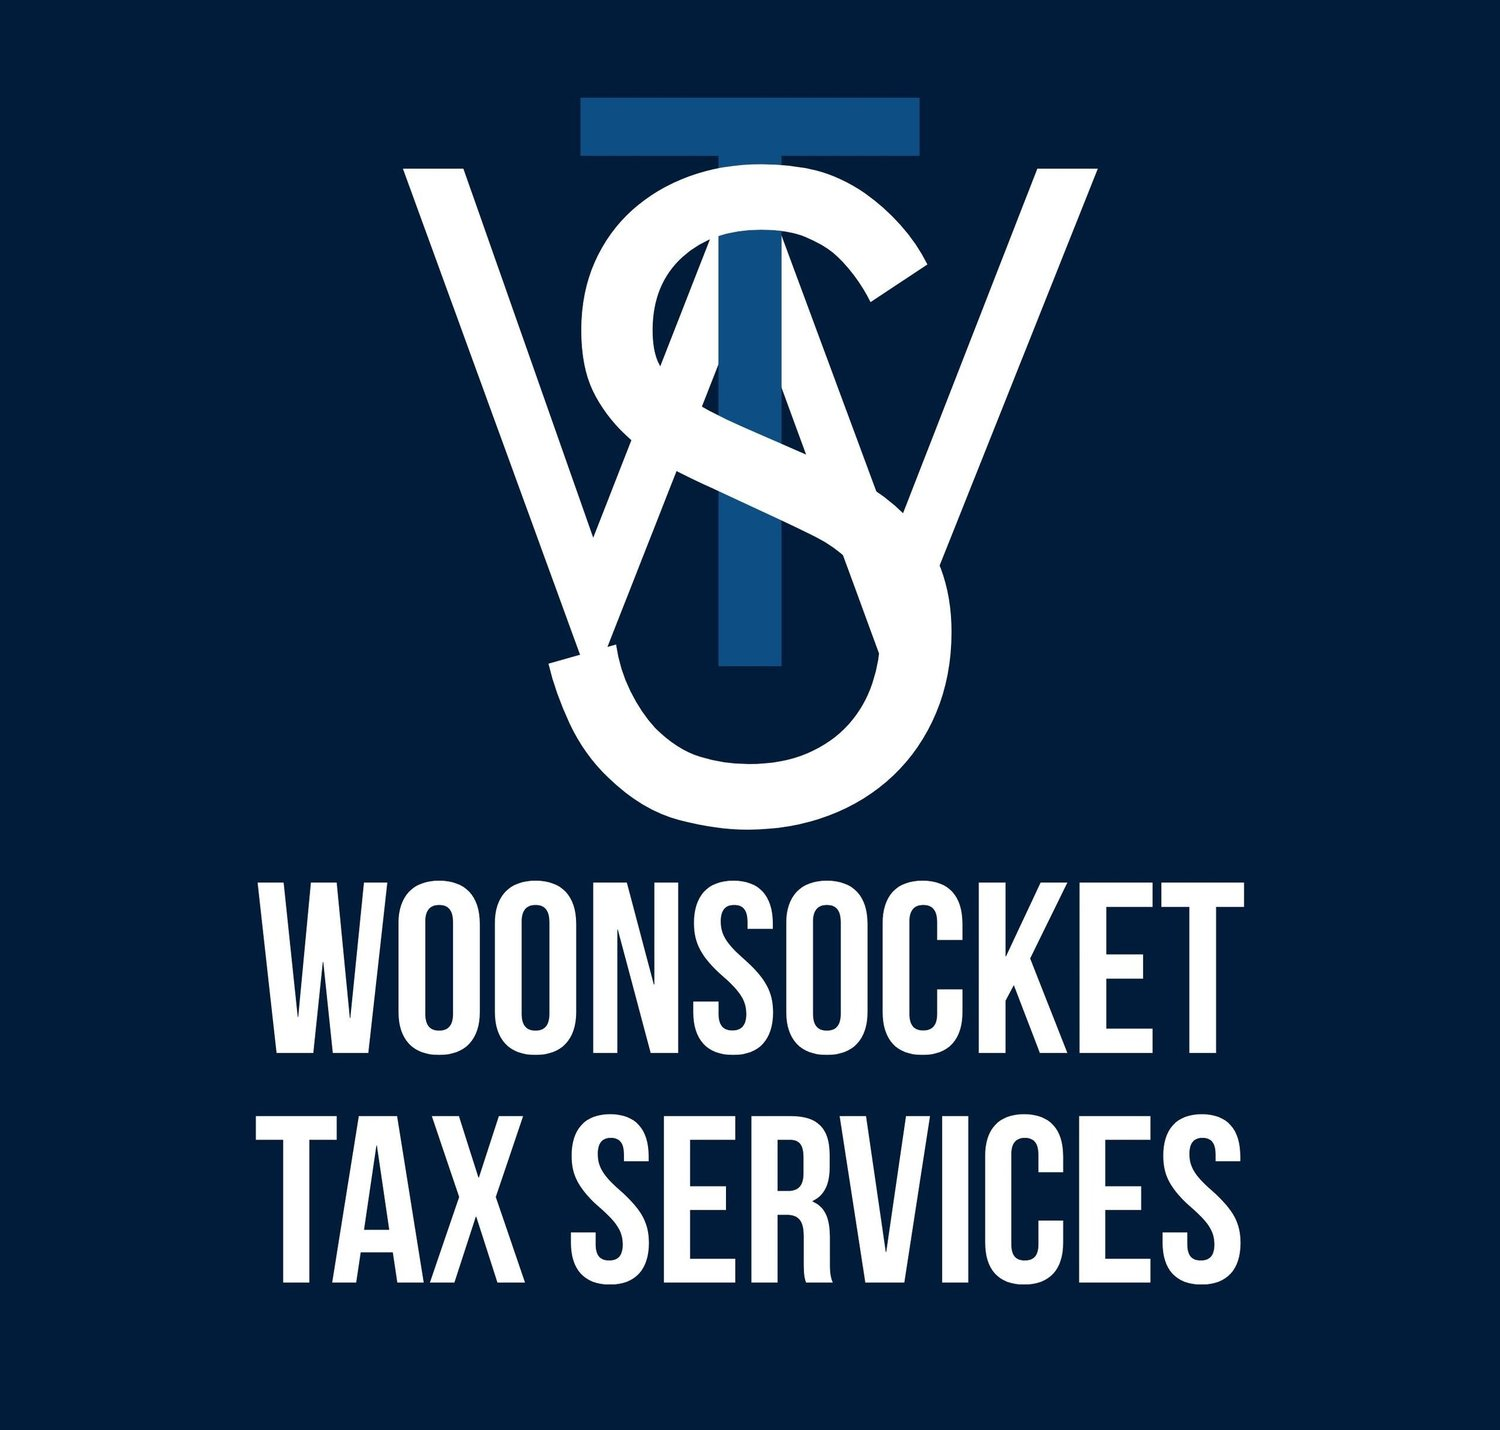 Woonsocket Tax Services